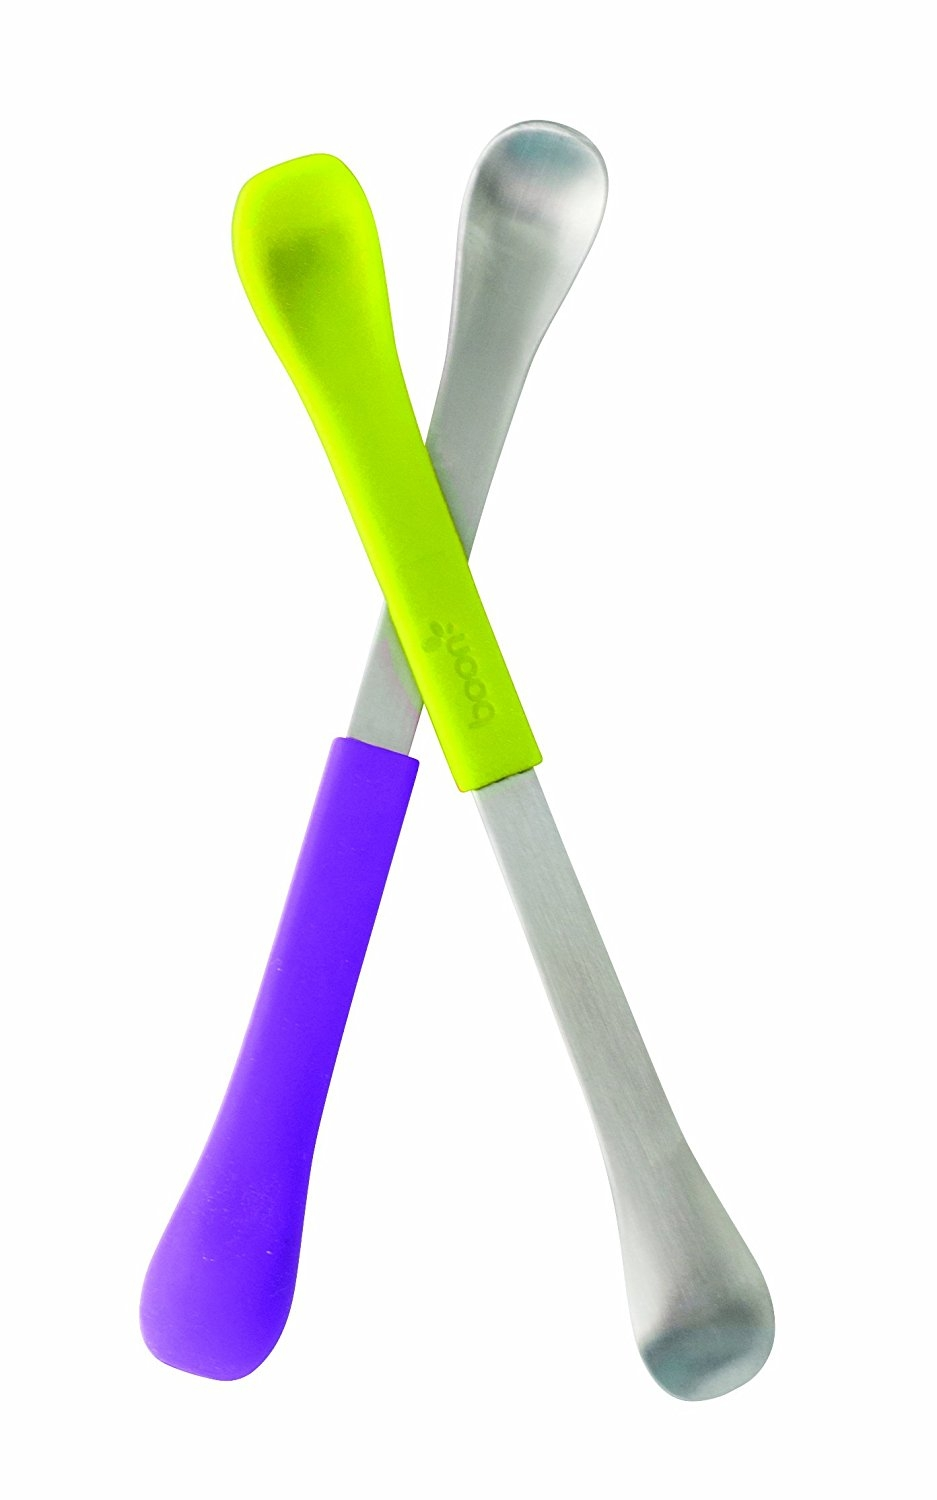 Boon Swap 2 Count 2 in 1 Feeding Spoon, Blue Green (Discontinued by Manufacturer) by Quality Brand